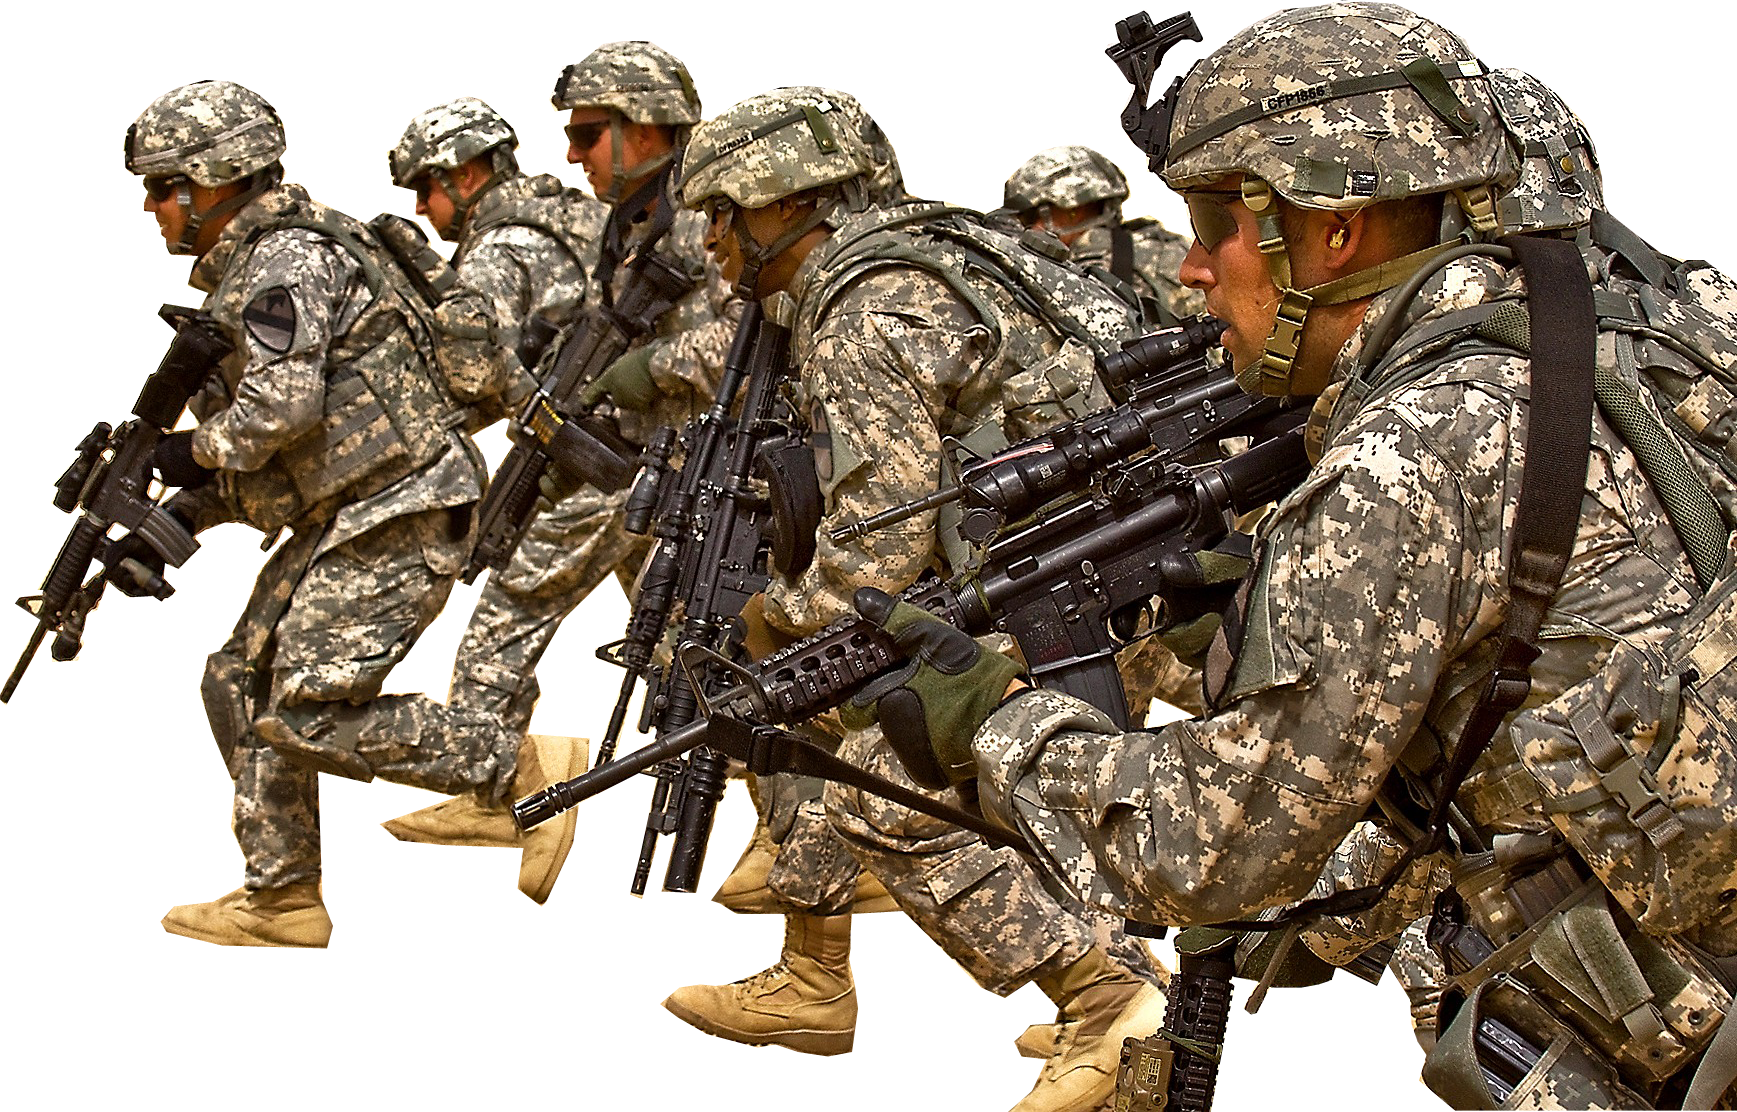 Soldiers clipart foji. Frames illustrations hd images